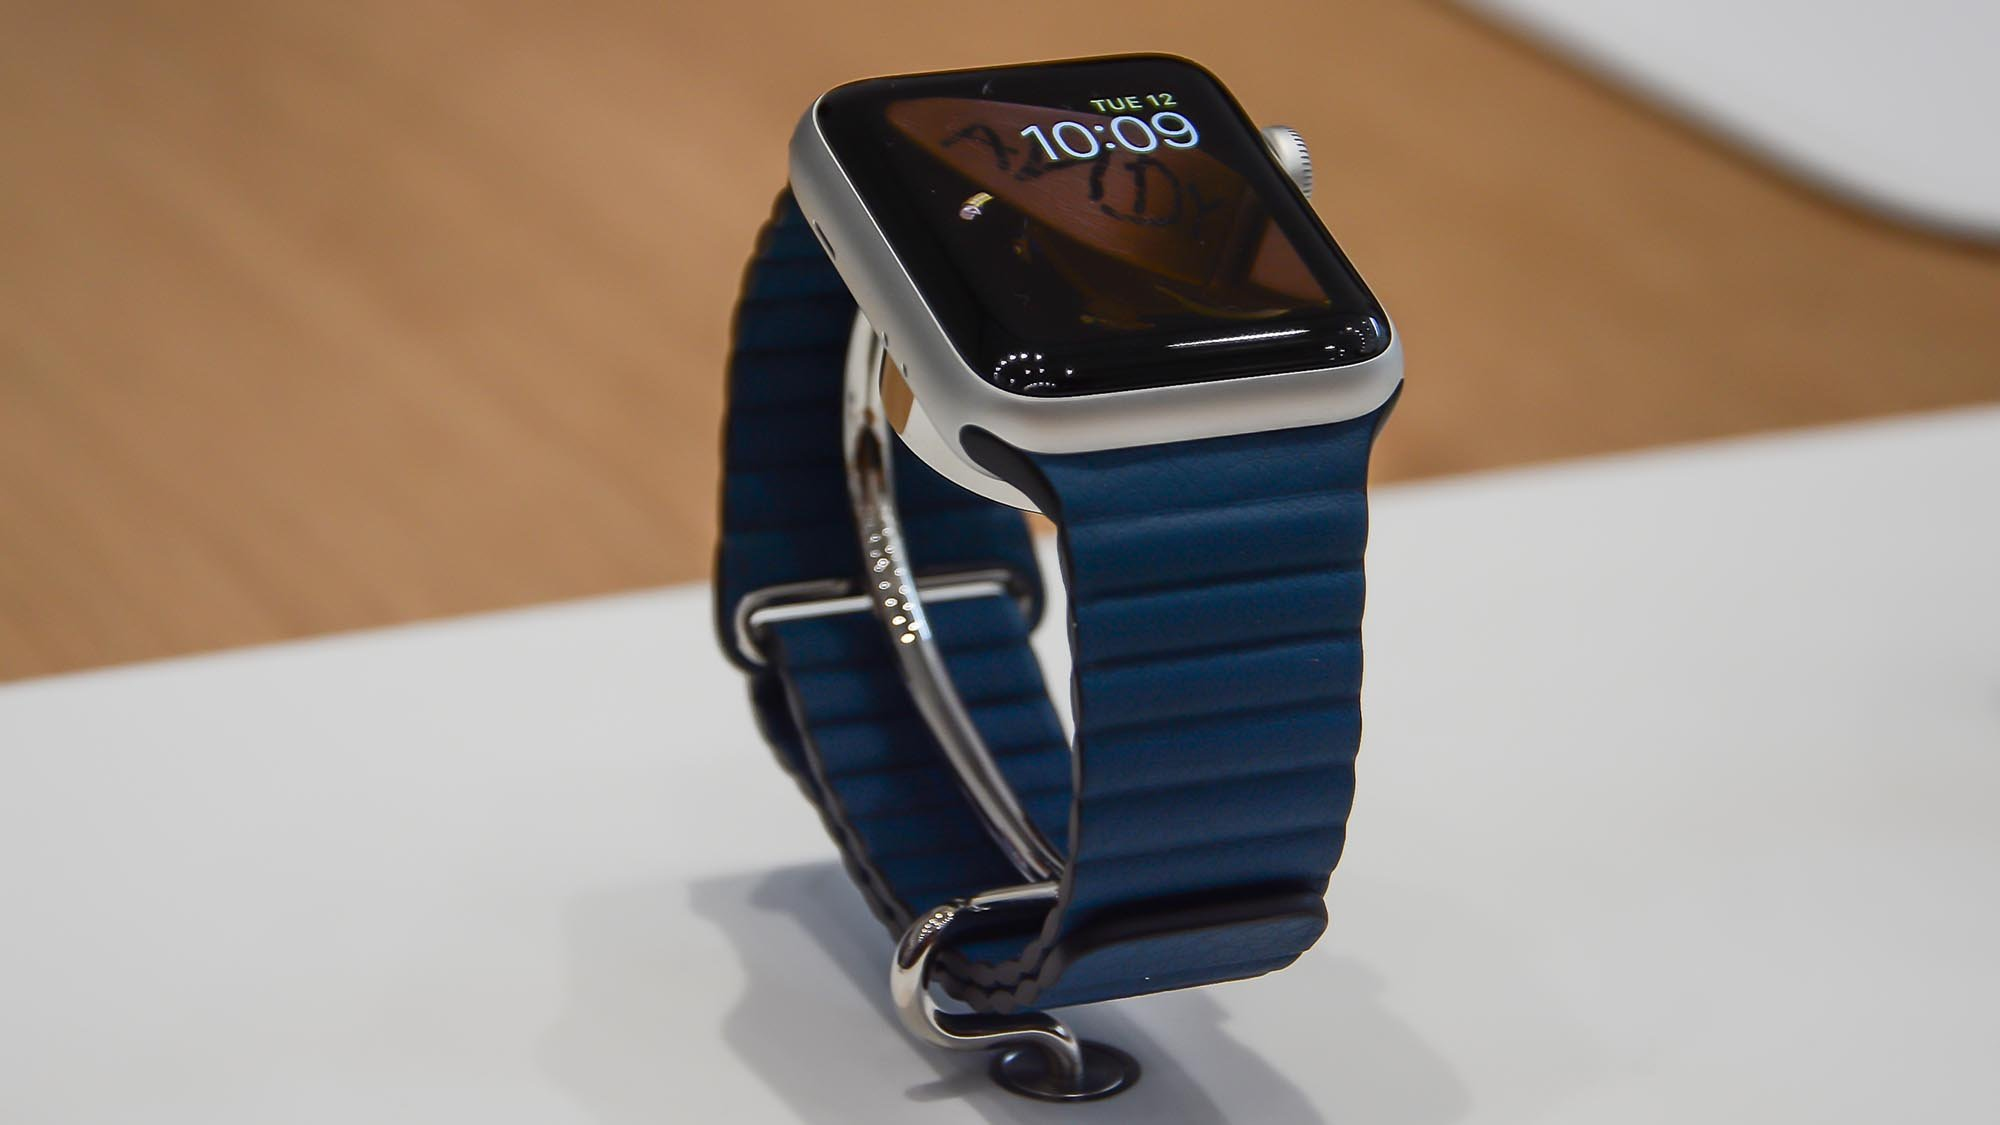 review watches tech hi smartwatches watch wallpaper your apple resolution iwatch i phone interface